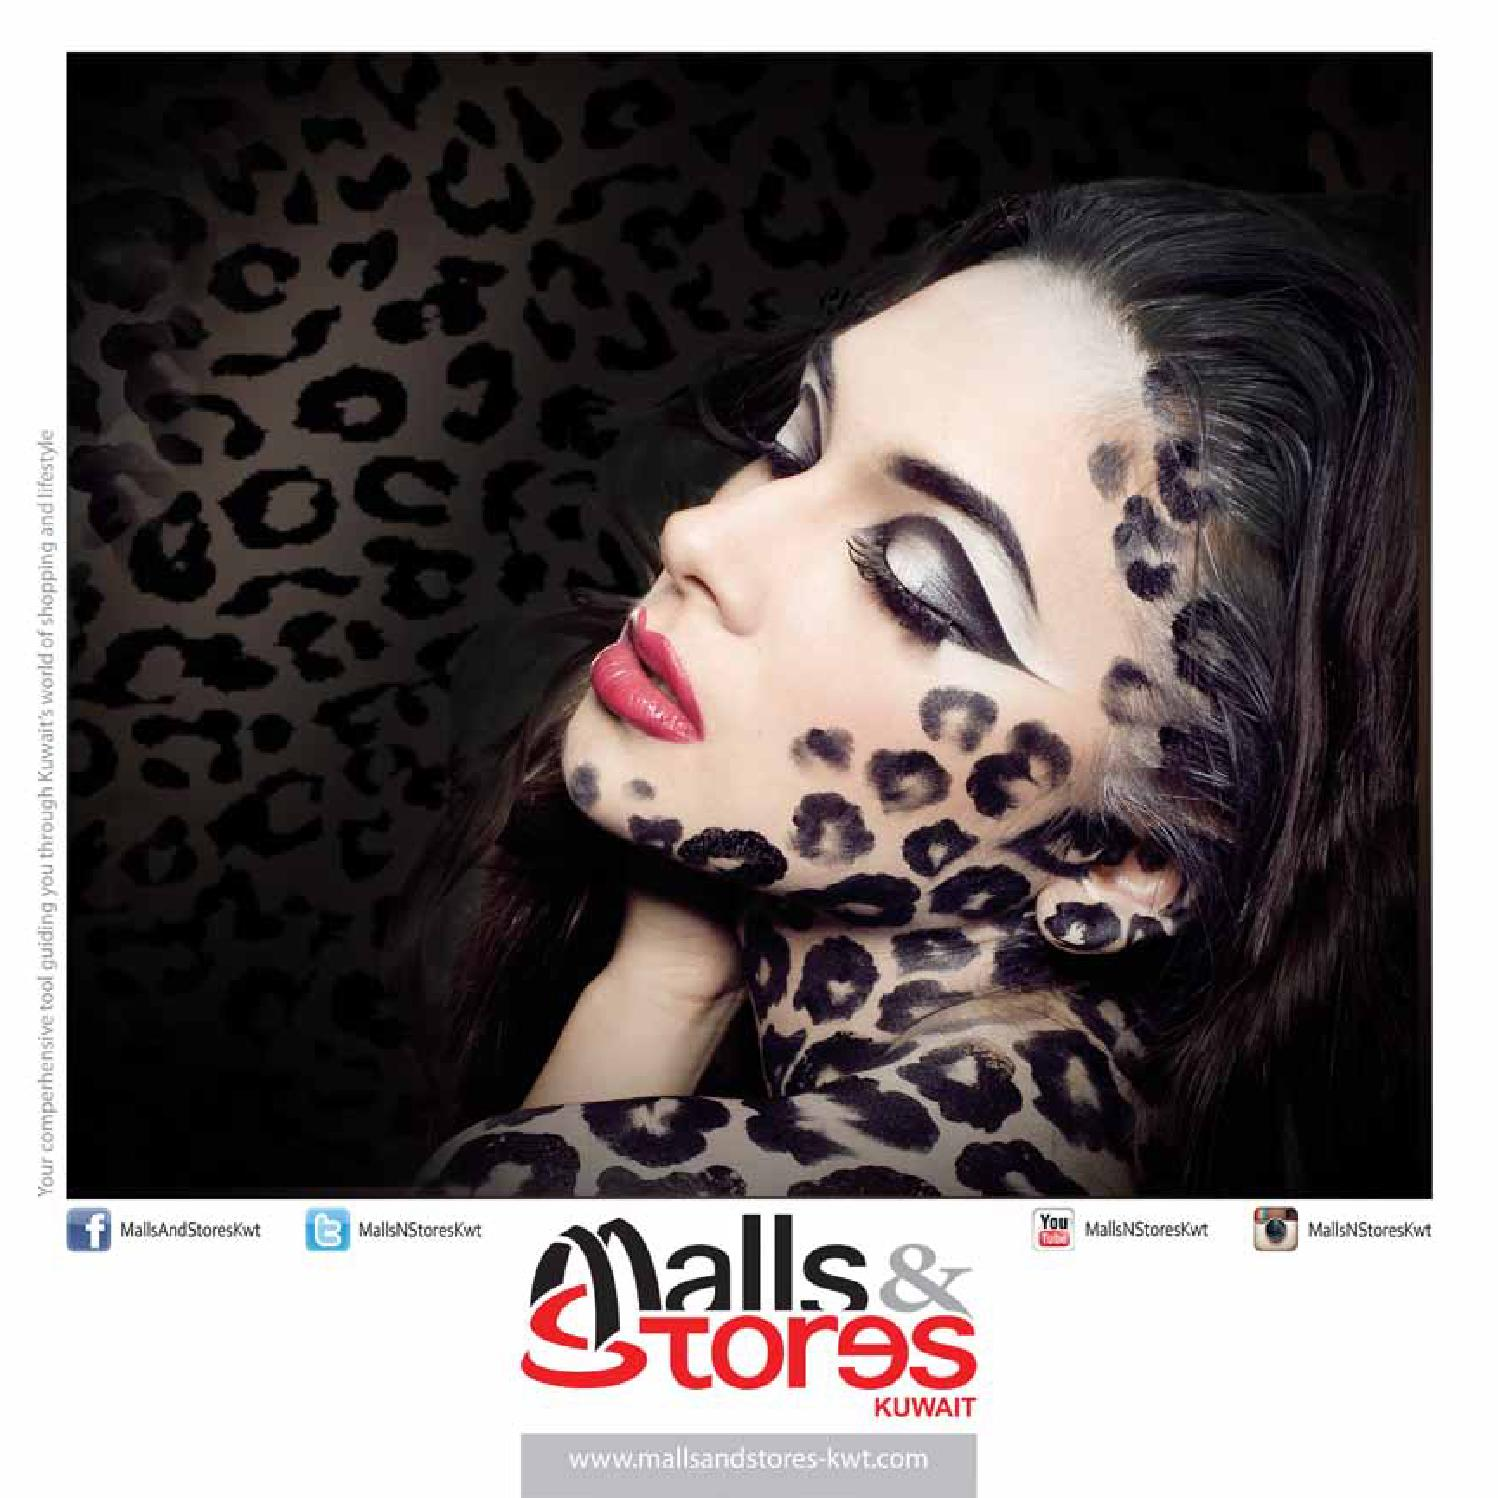 93c0d8c40 Malls & Stores Fall/ Winter 2013/14 by Malls and Stores Kuwait - issuu